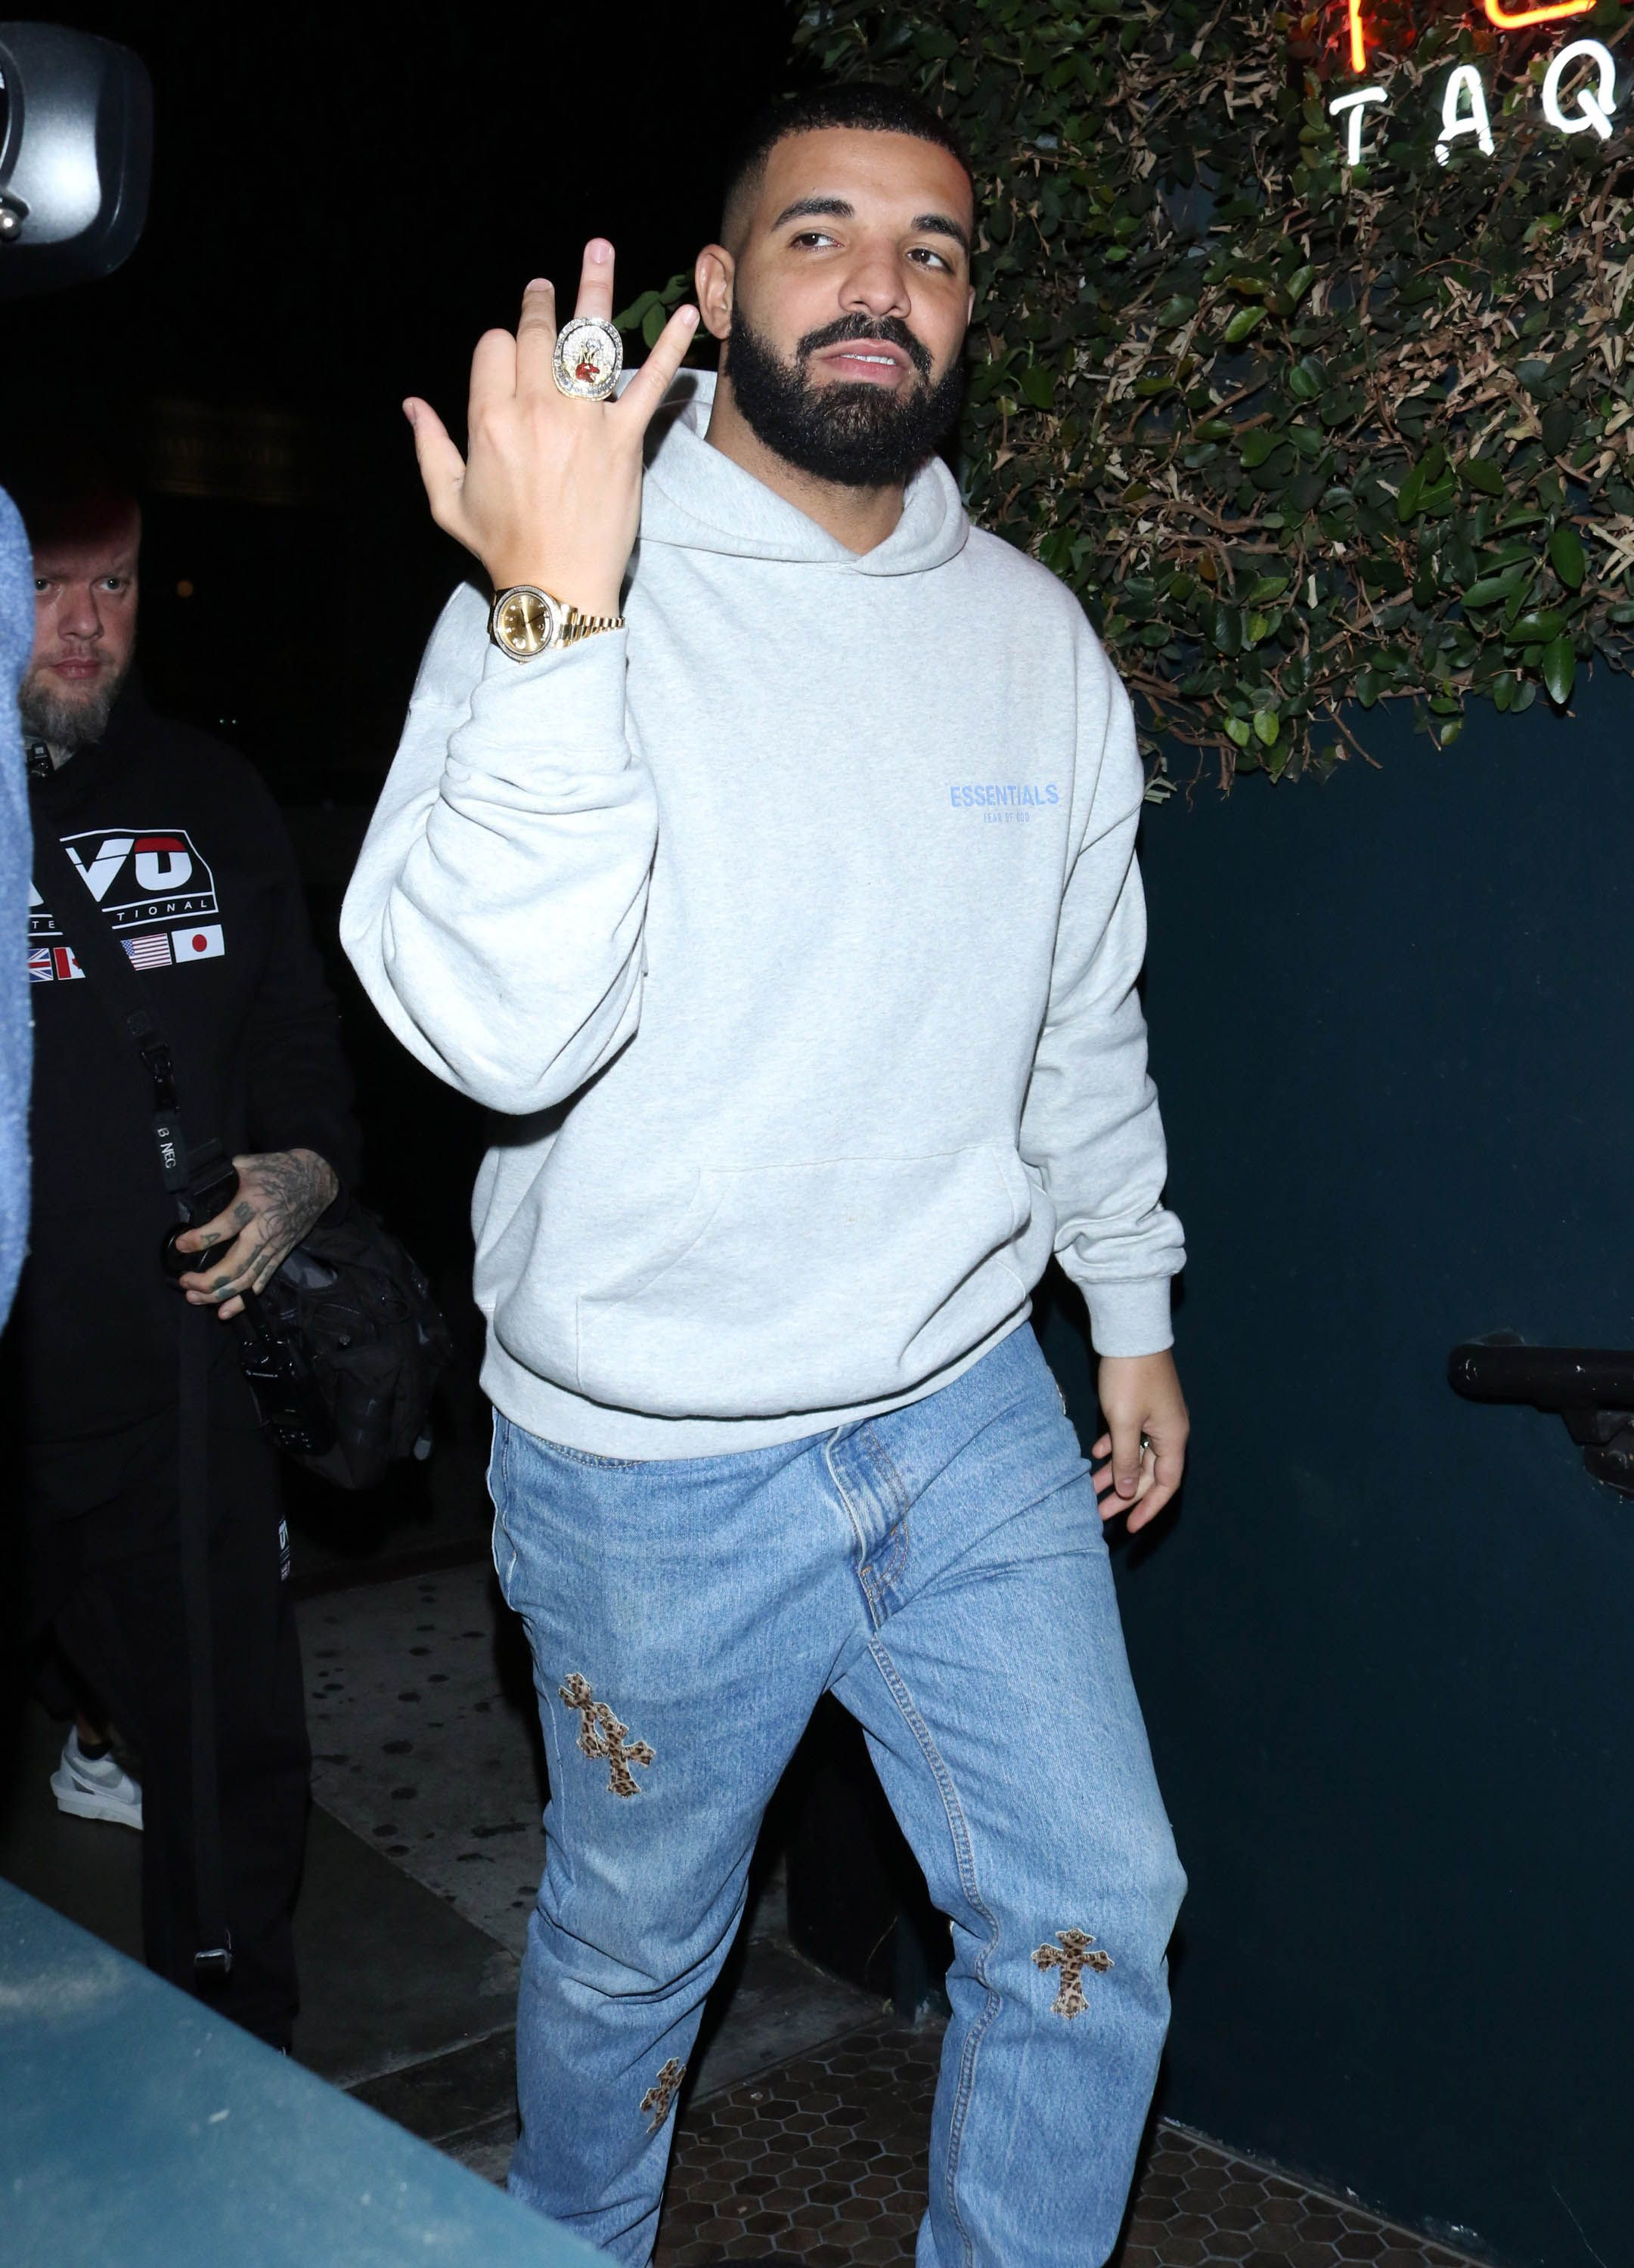 Drake's Watch Has Actual Hotline Bling